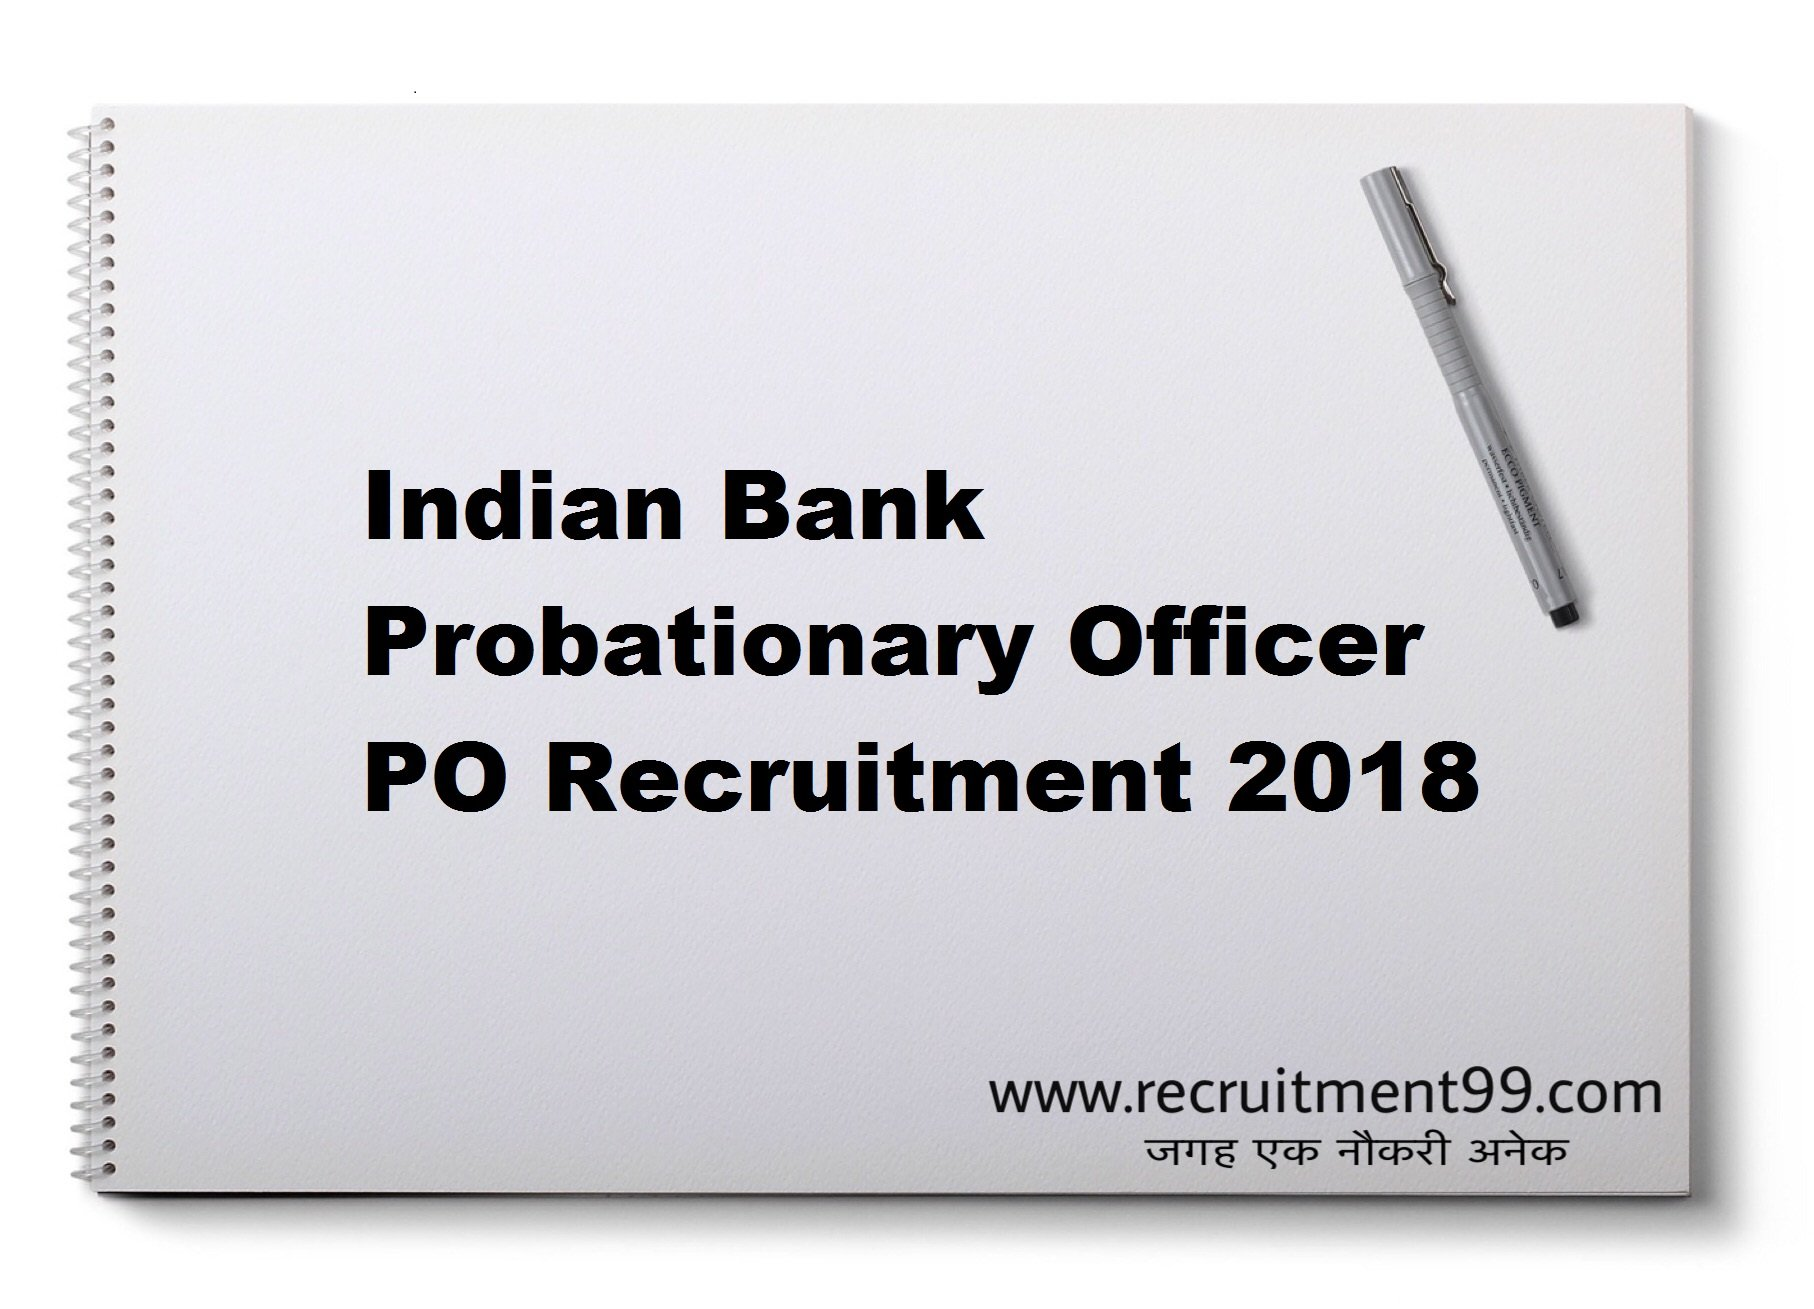 Indian Bank Probationary Officer PO Recruitment Admit Card Result 2018